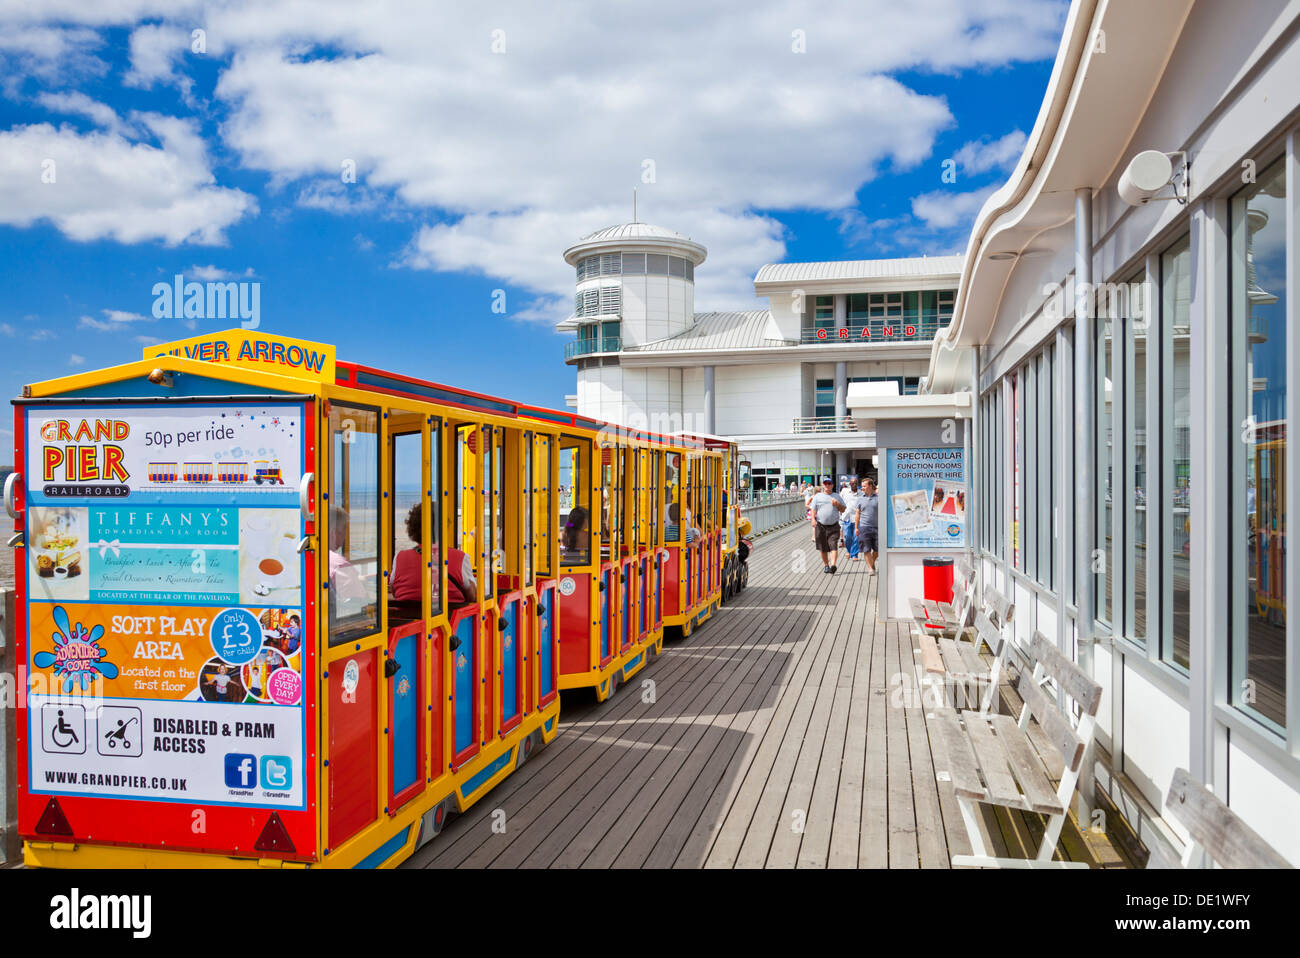 The little train on Weston Super Mare Grand Pier Weston-Super-Mare Somerset England UK GB EU Europe - Stock Image